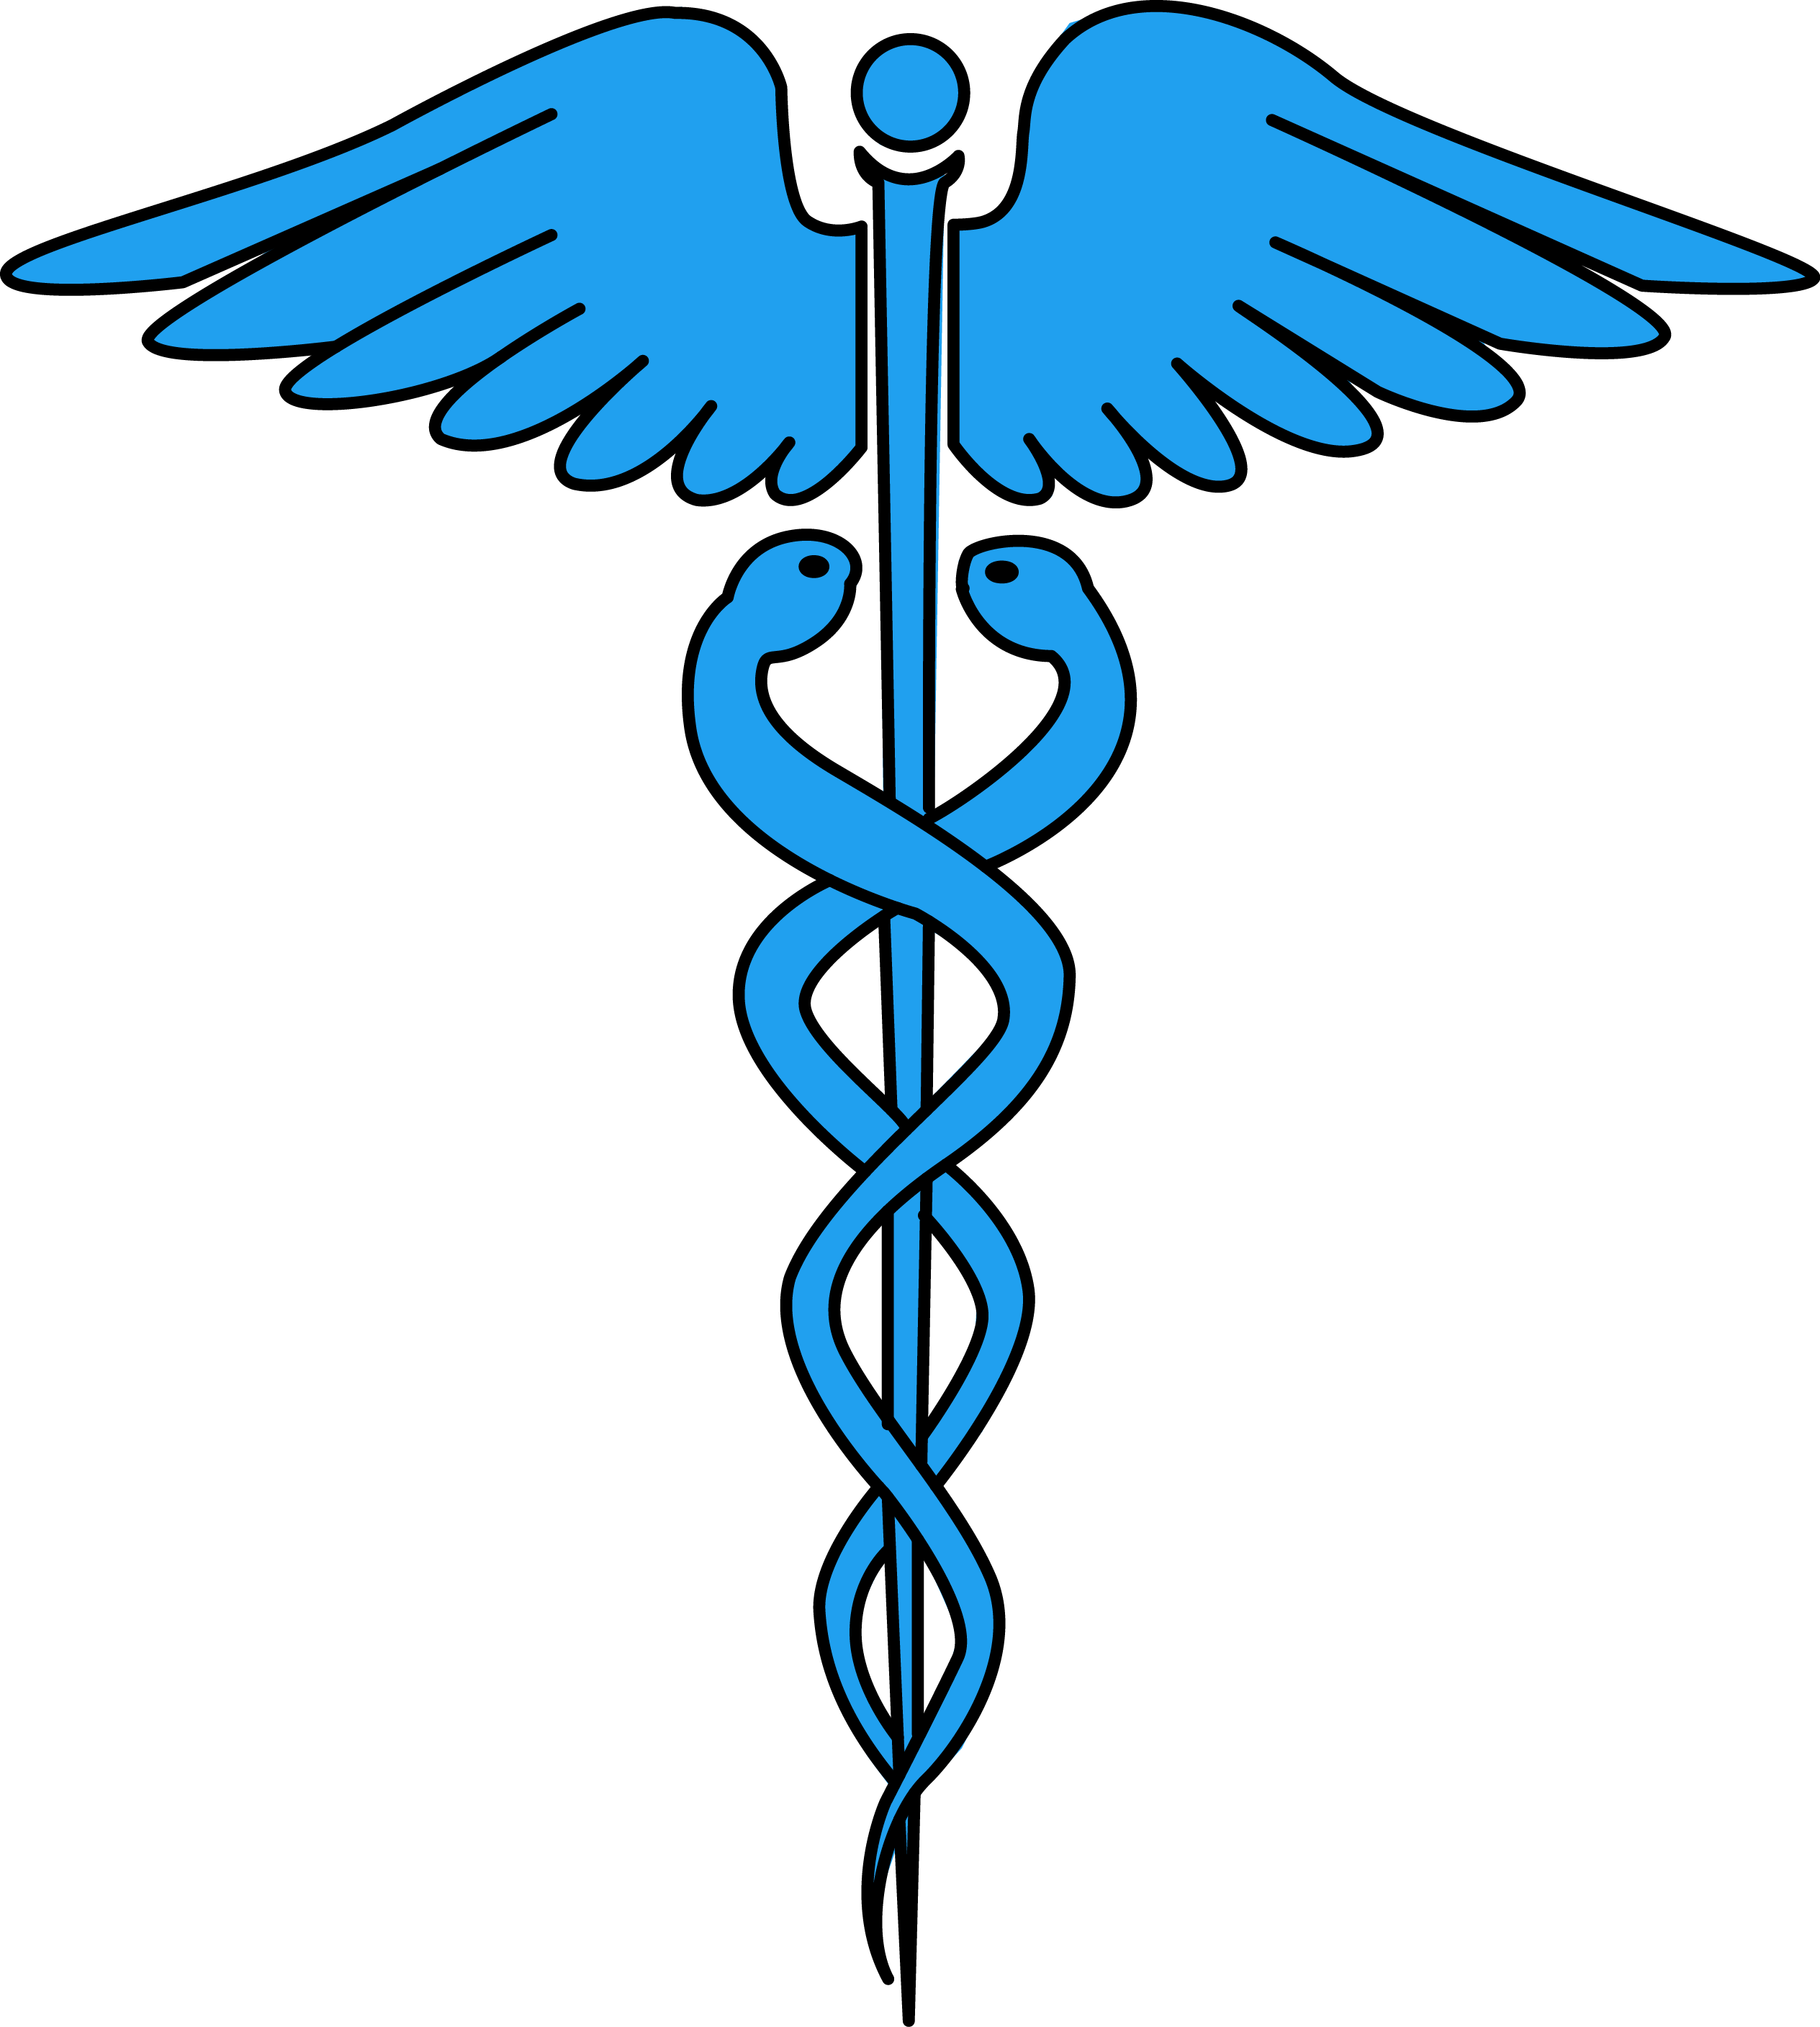 Doctor symbol clipart free download best doctor symbol clipart 2528x2815 image for free caduceus medical symbol health high resolution clip buycottarizona